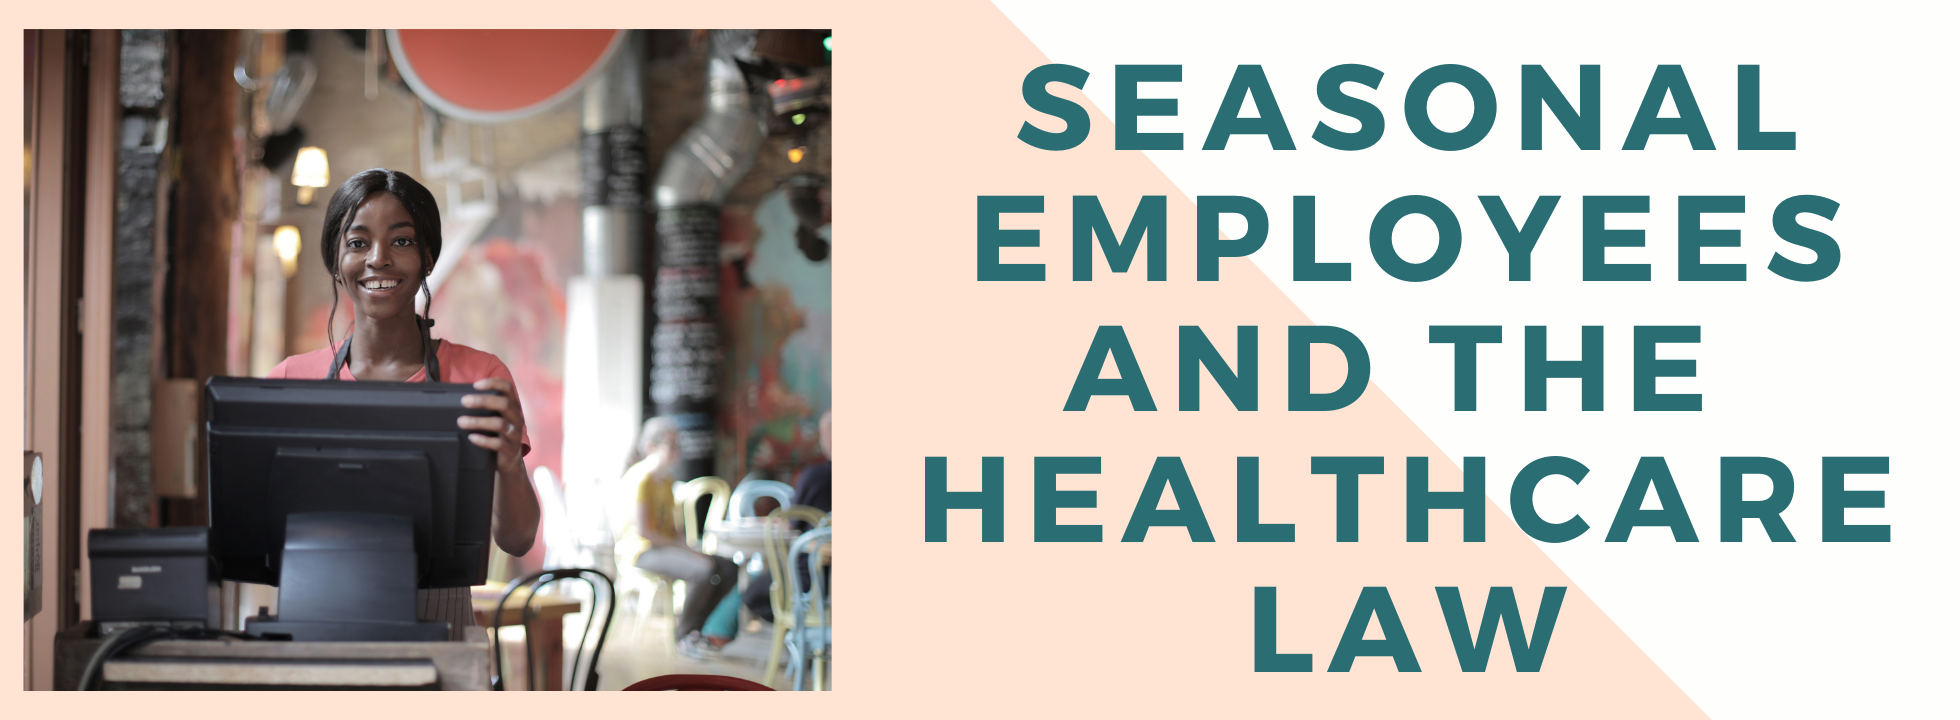 Seasonal Employees and the Healthcare Law